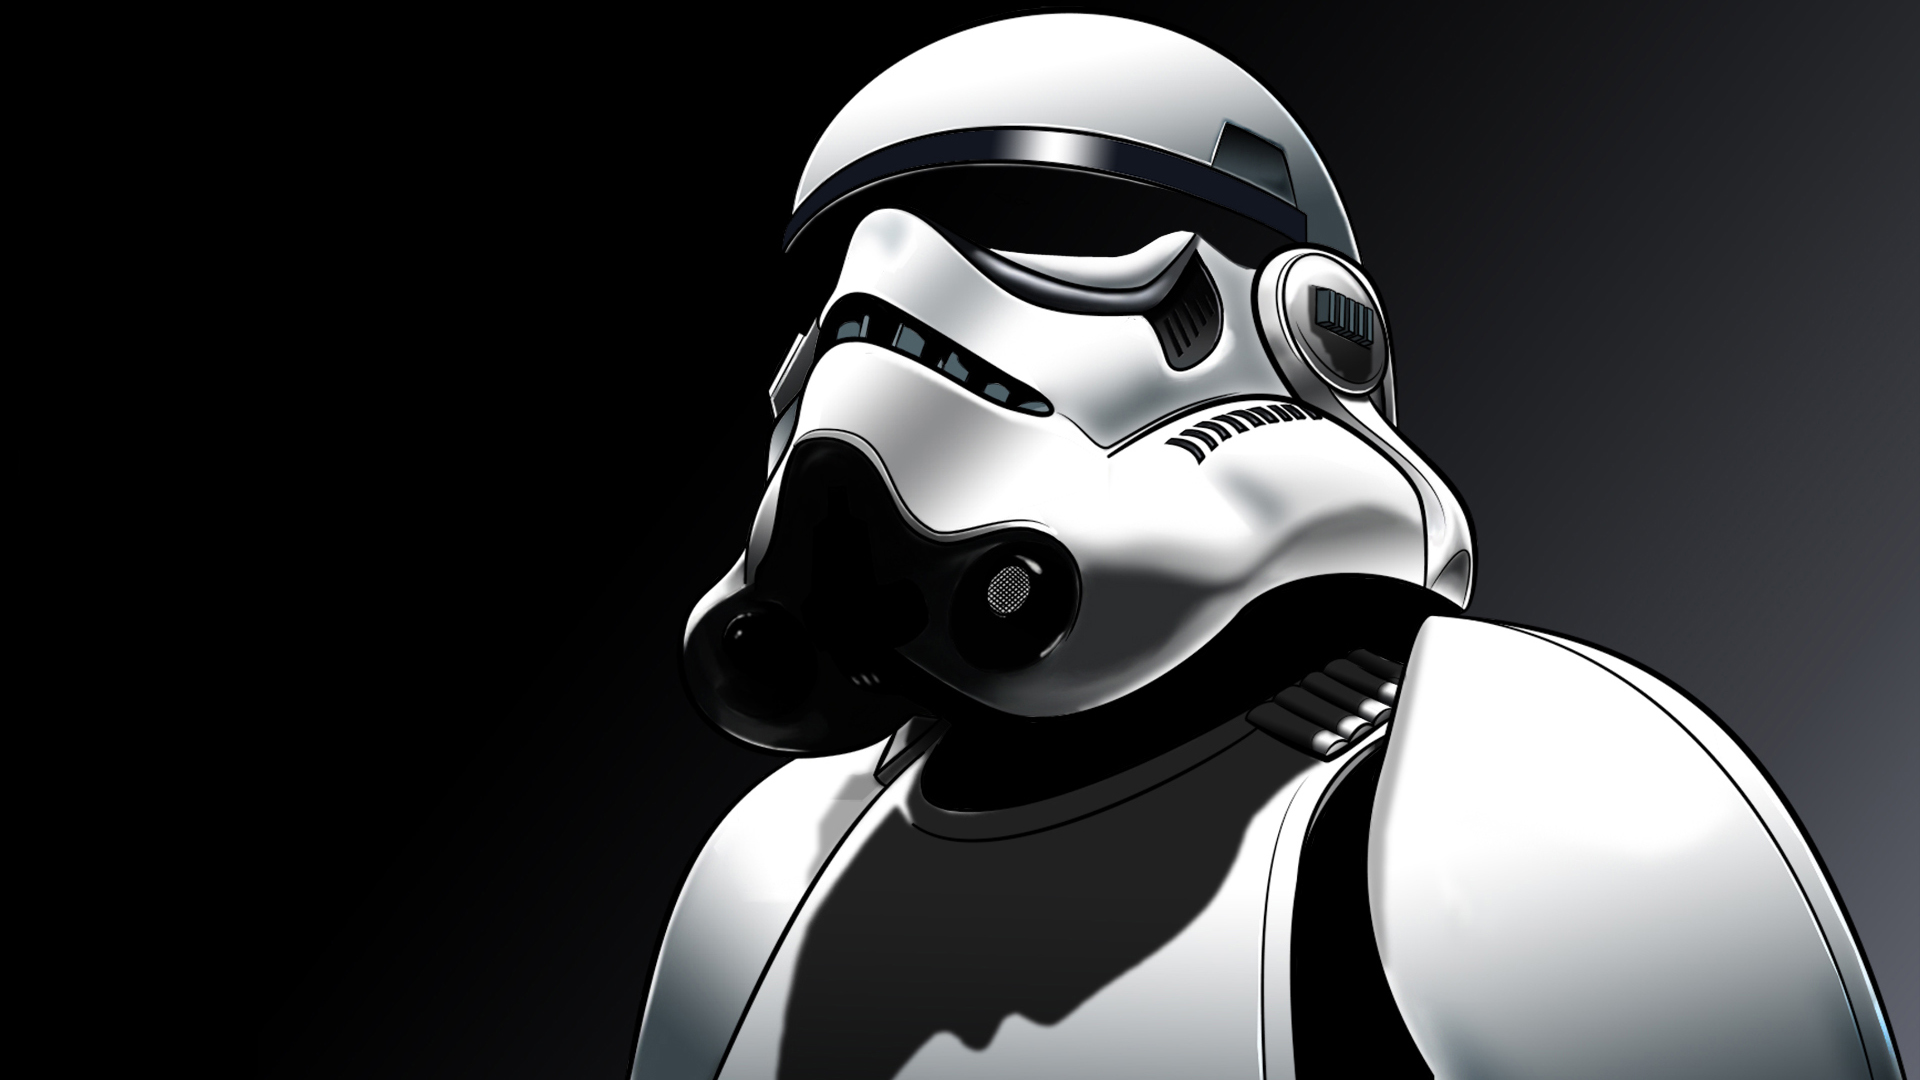 Star Wars Wallpapers white